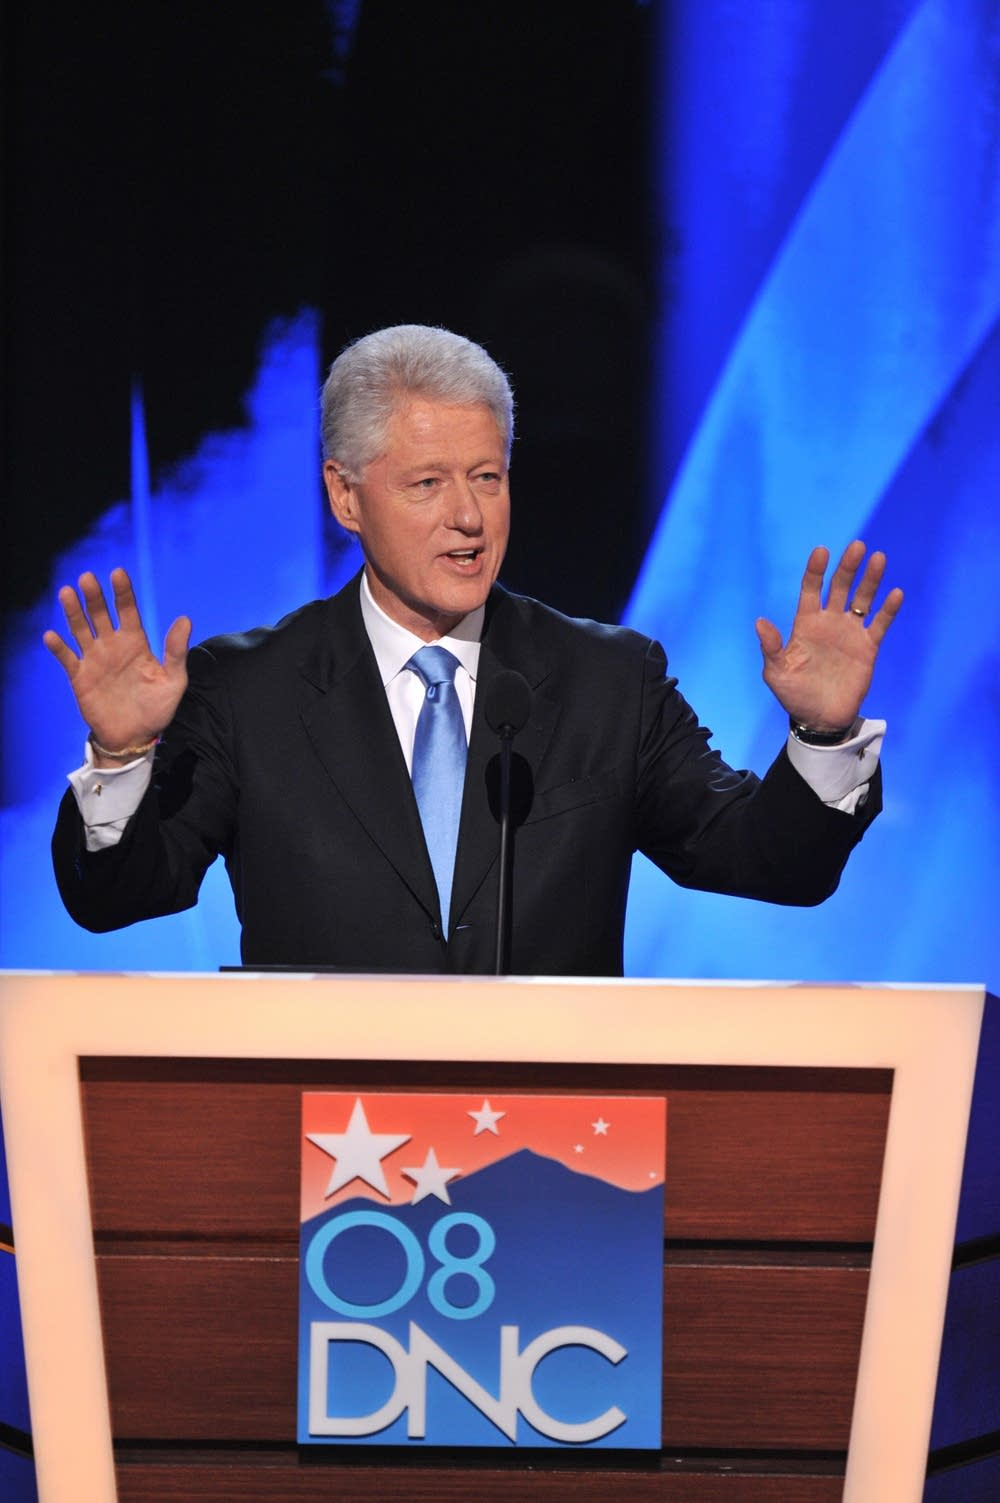 Former U.S. president Bill Clinton takes the stage